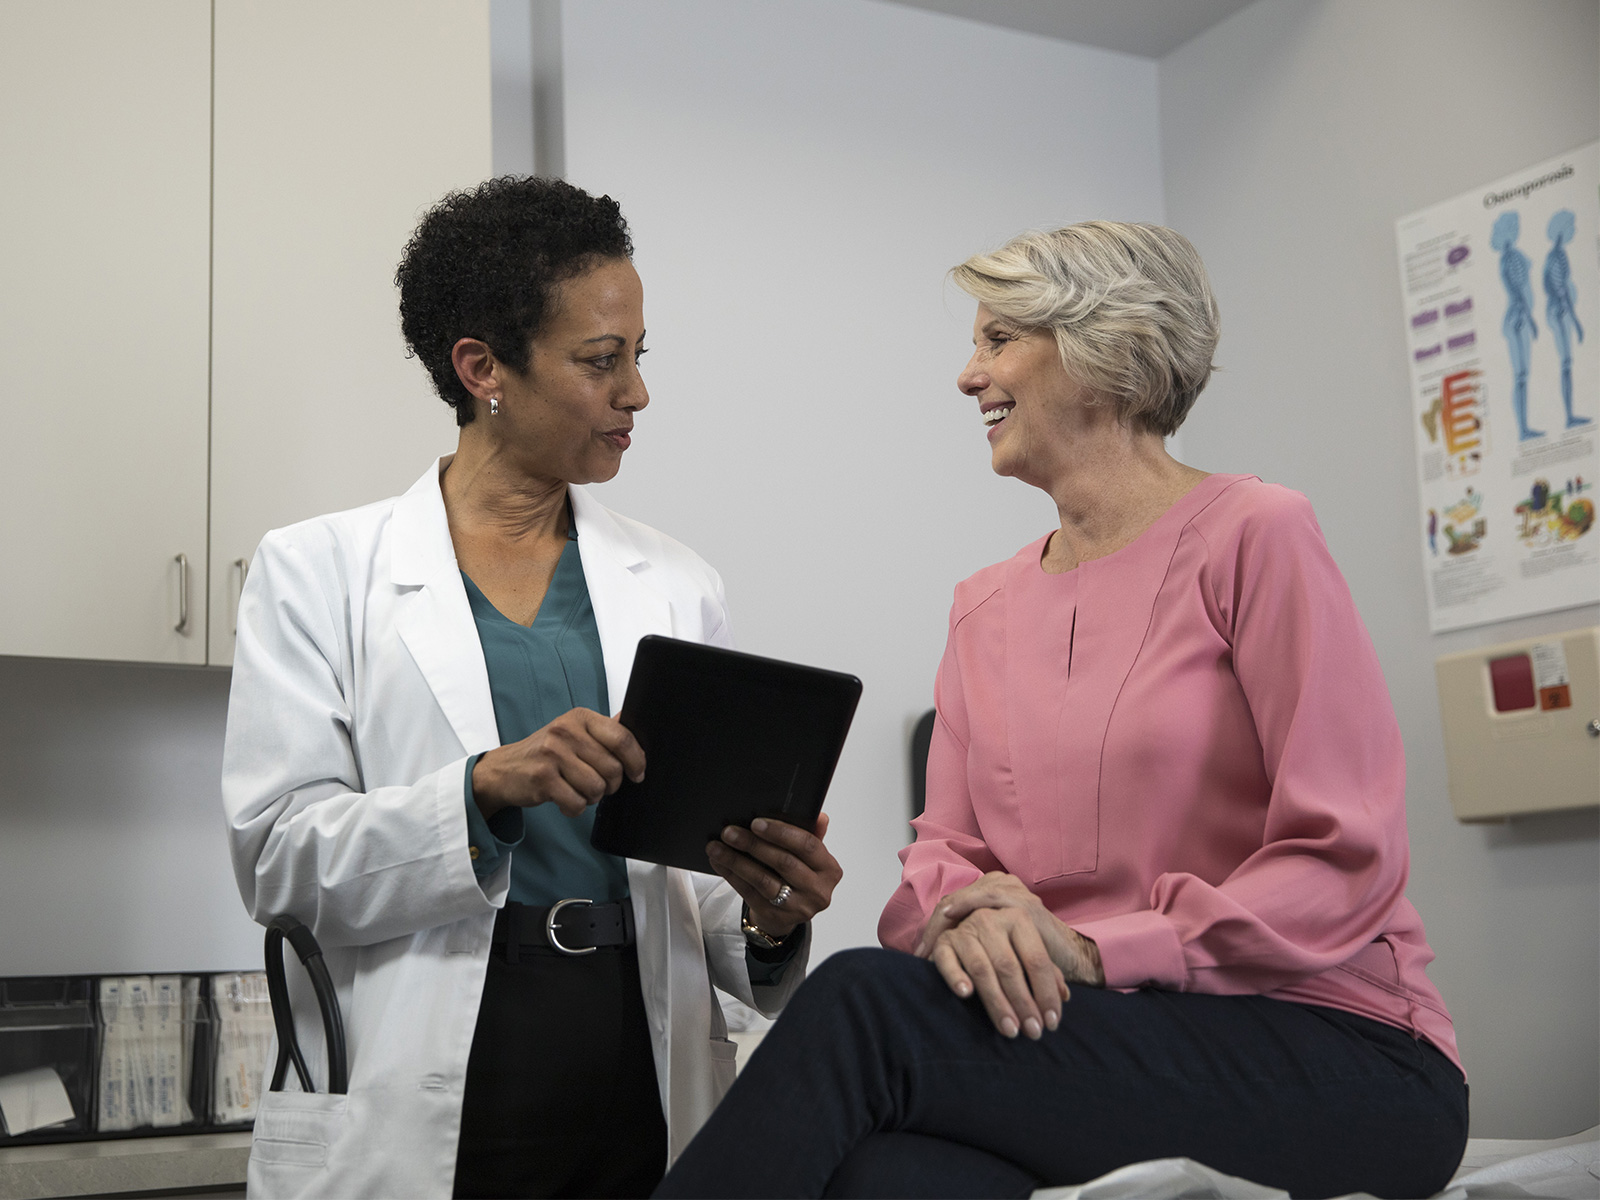 A patient smiles while a doctor shows her something on a screen.